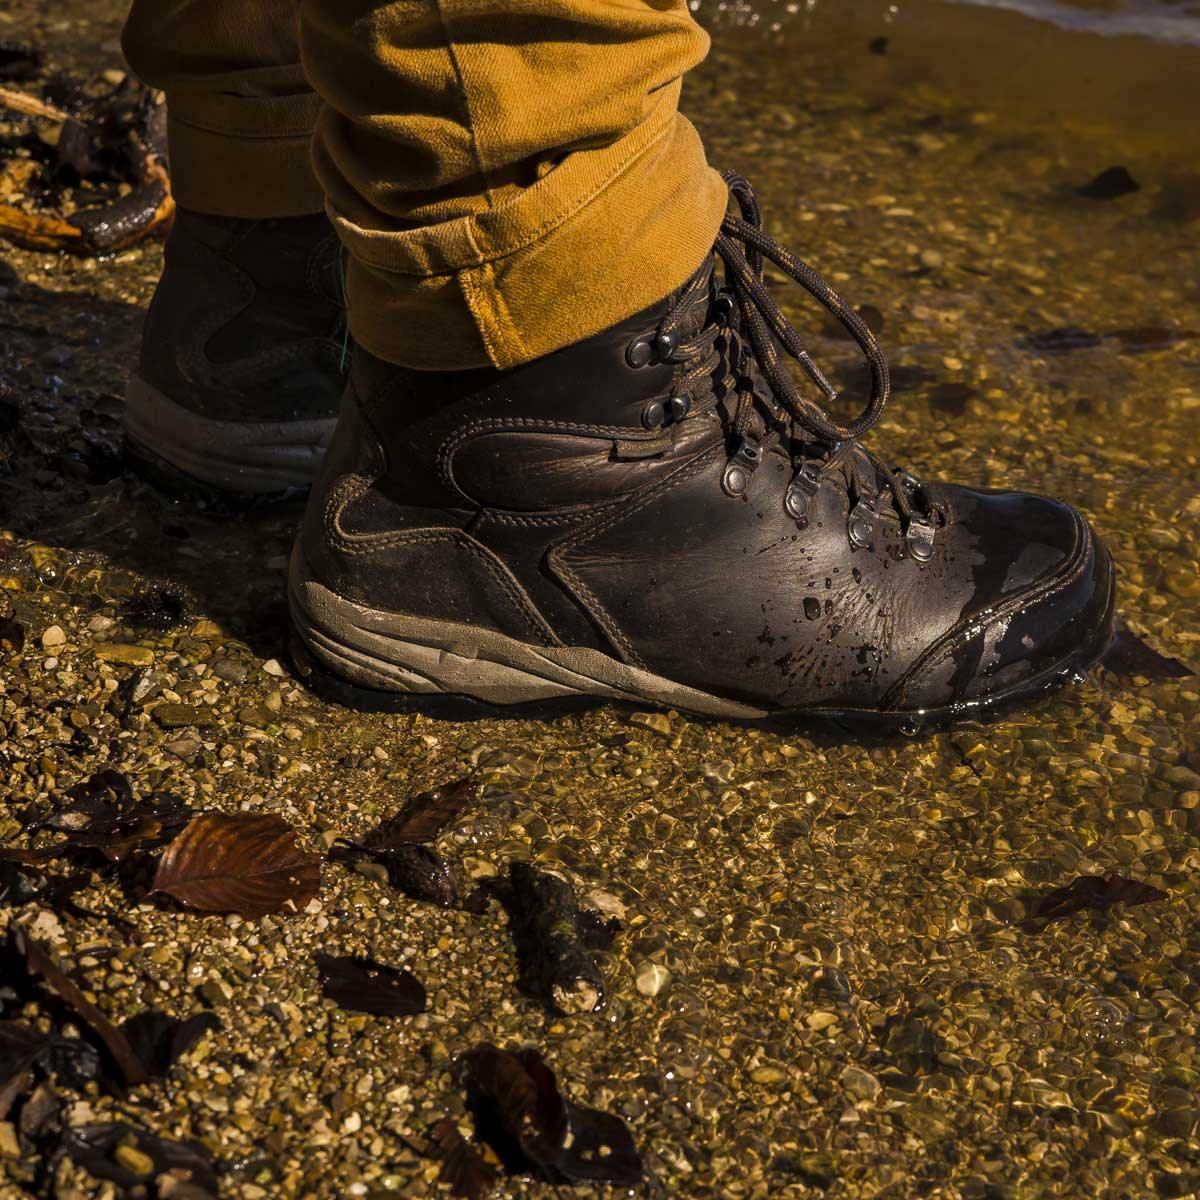 9fed6347f7ea5 Check out the updated guide about hiking footwear on Camotrek at https://bit